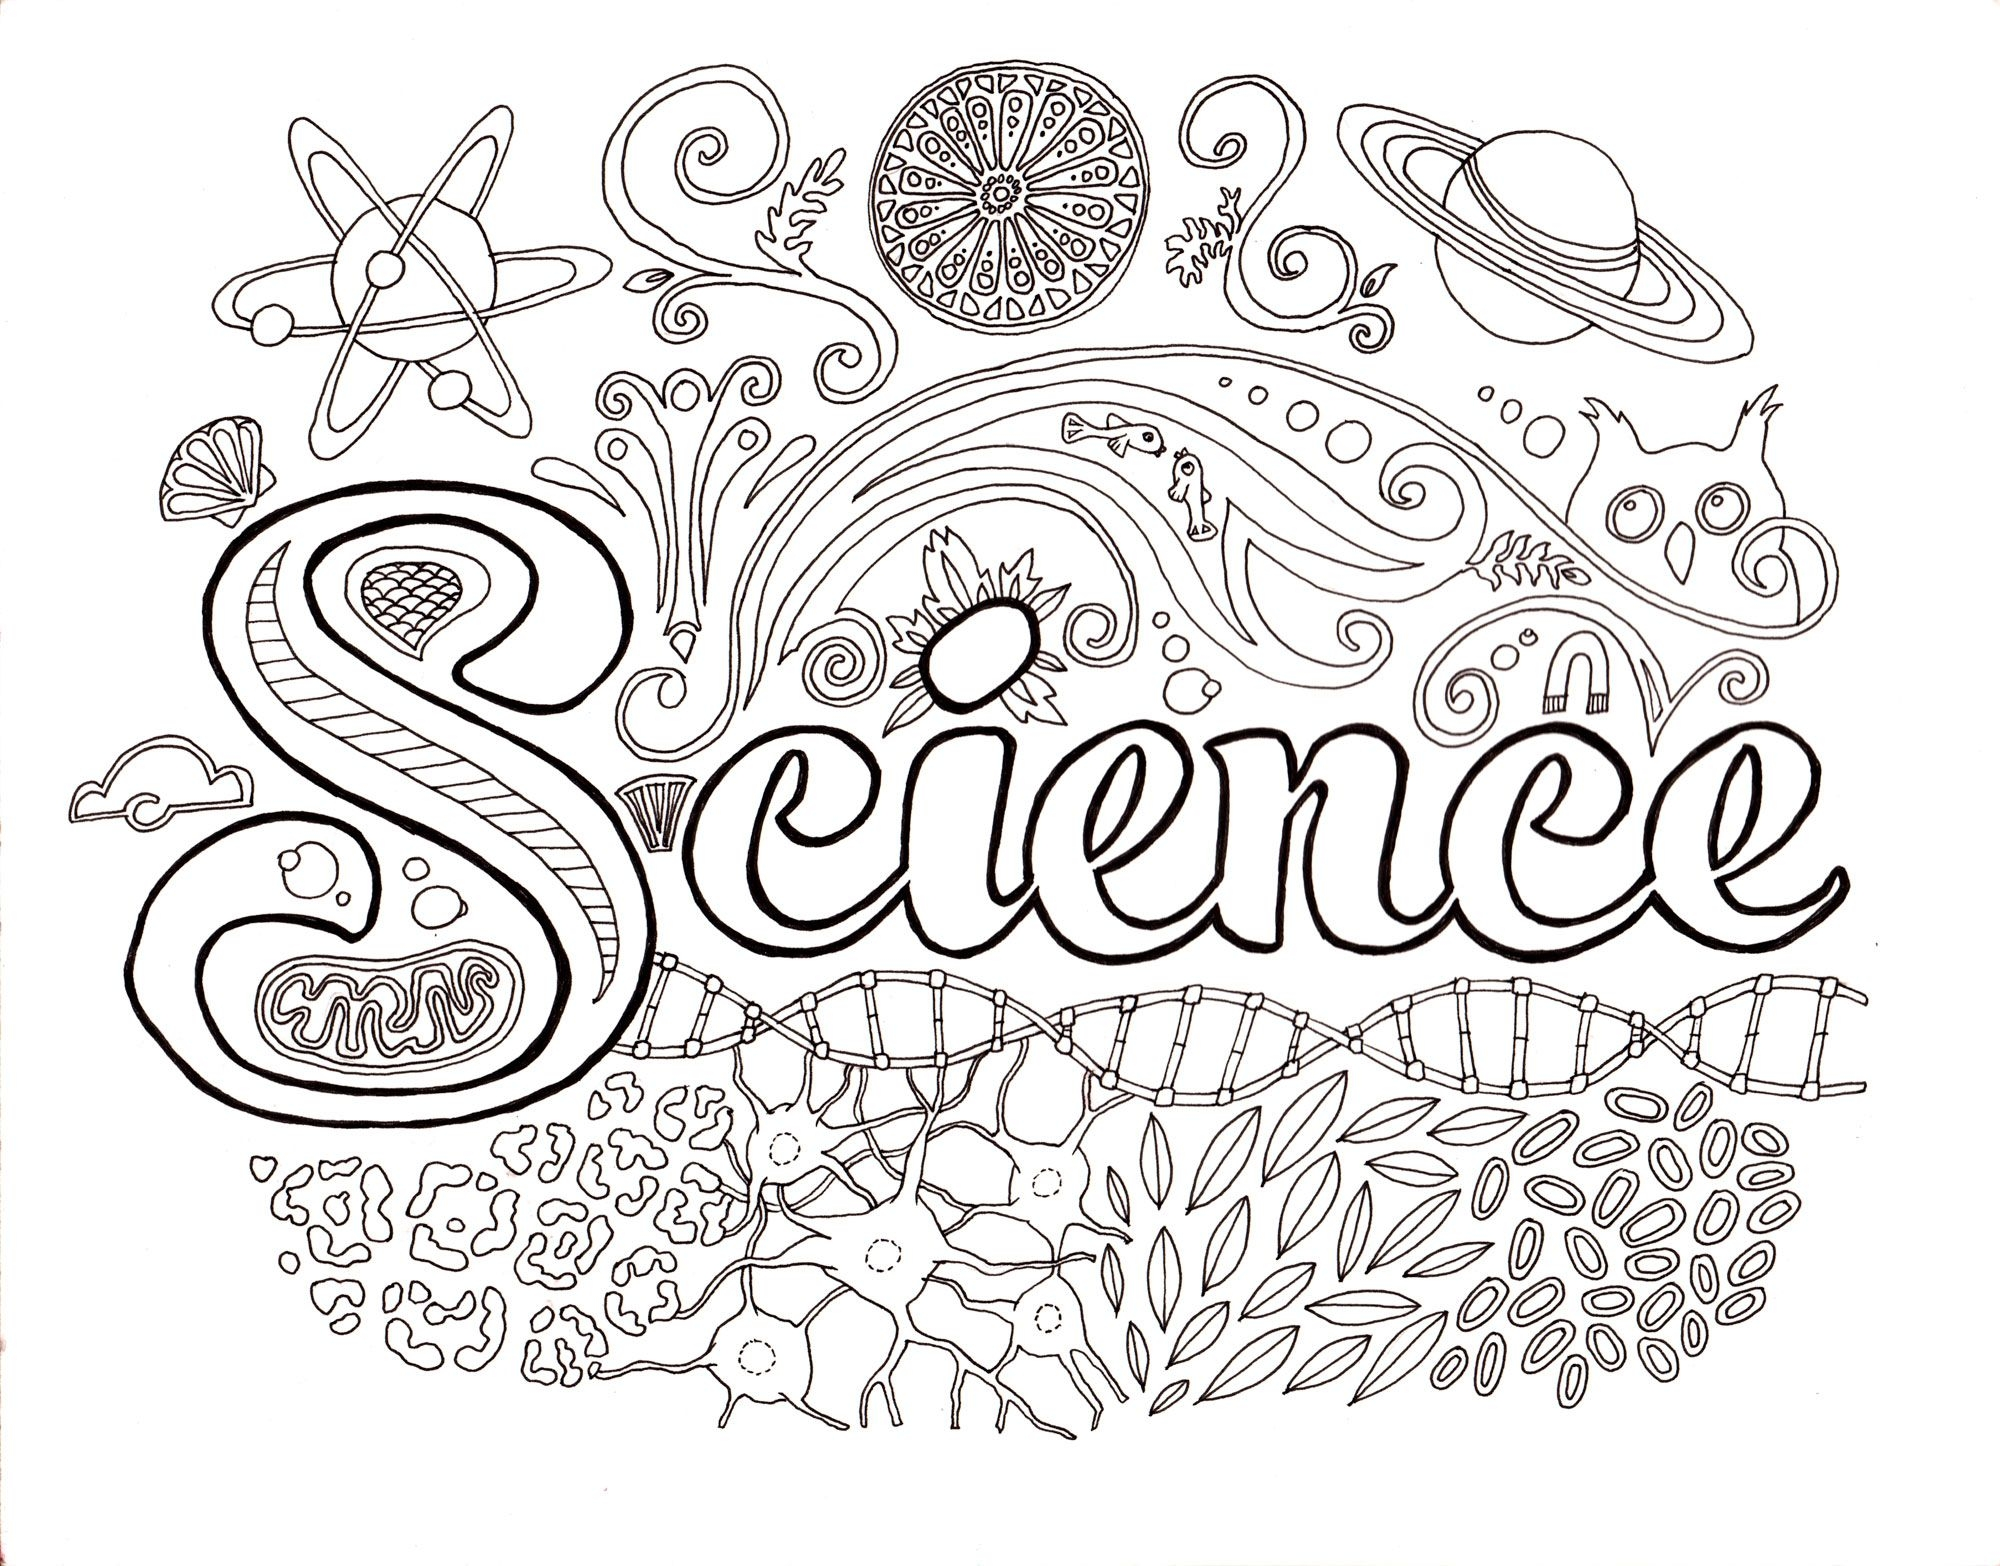 science coloring pages - science lab coloring pages